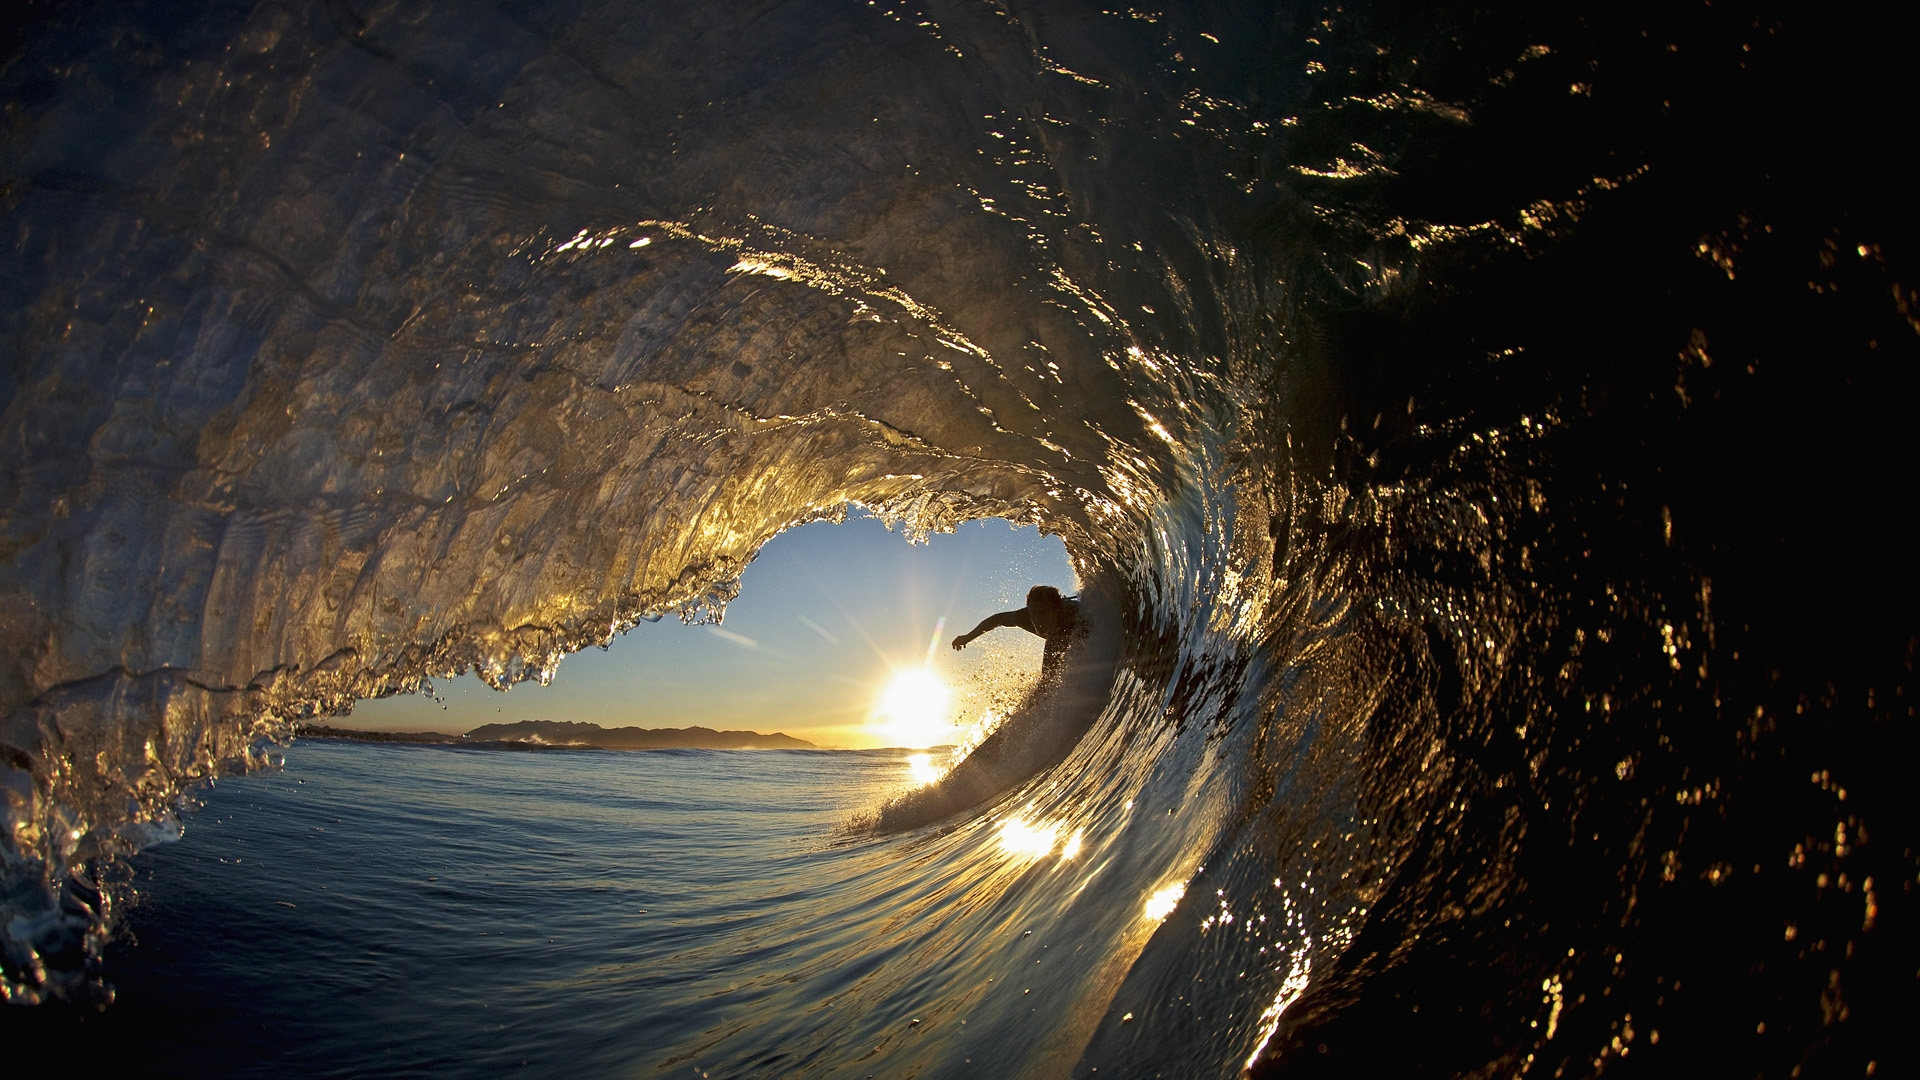 download wallpaper 1920x1080 surfing, wave, guy, silhouette, extreme